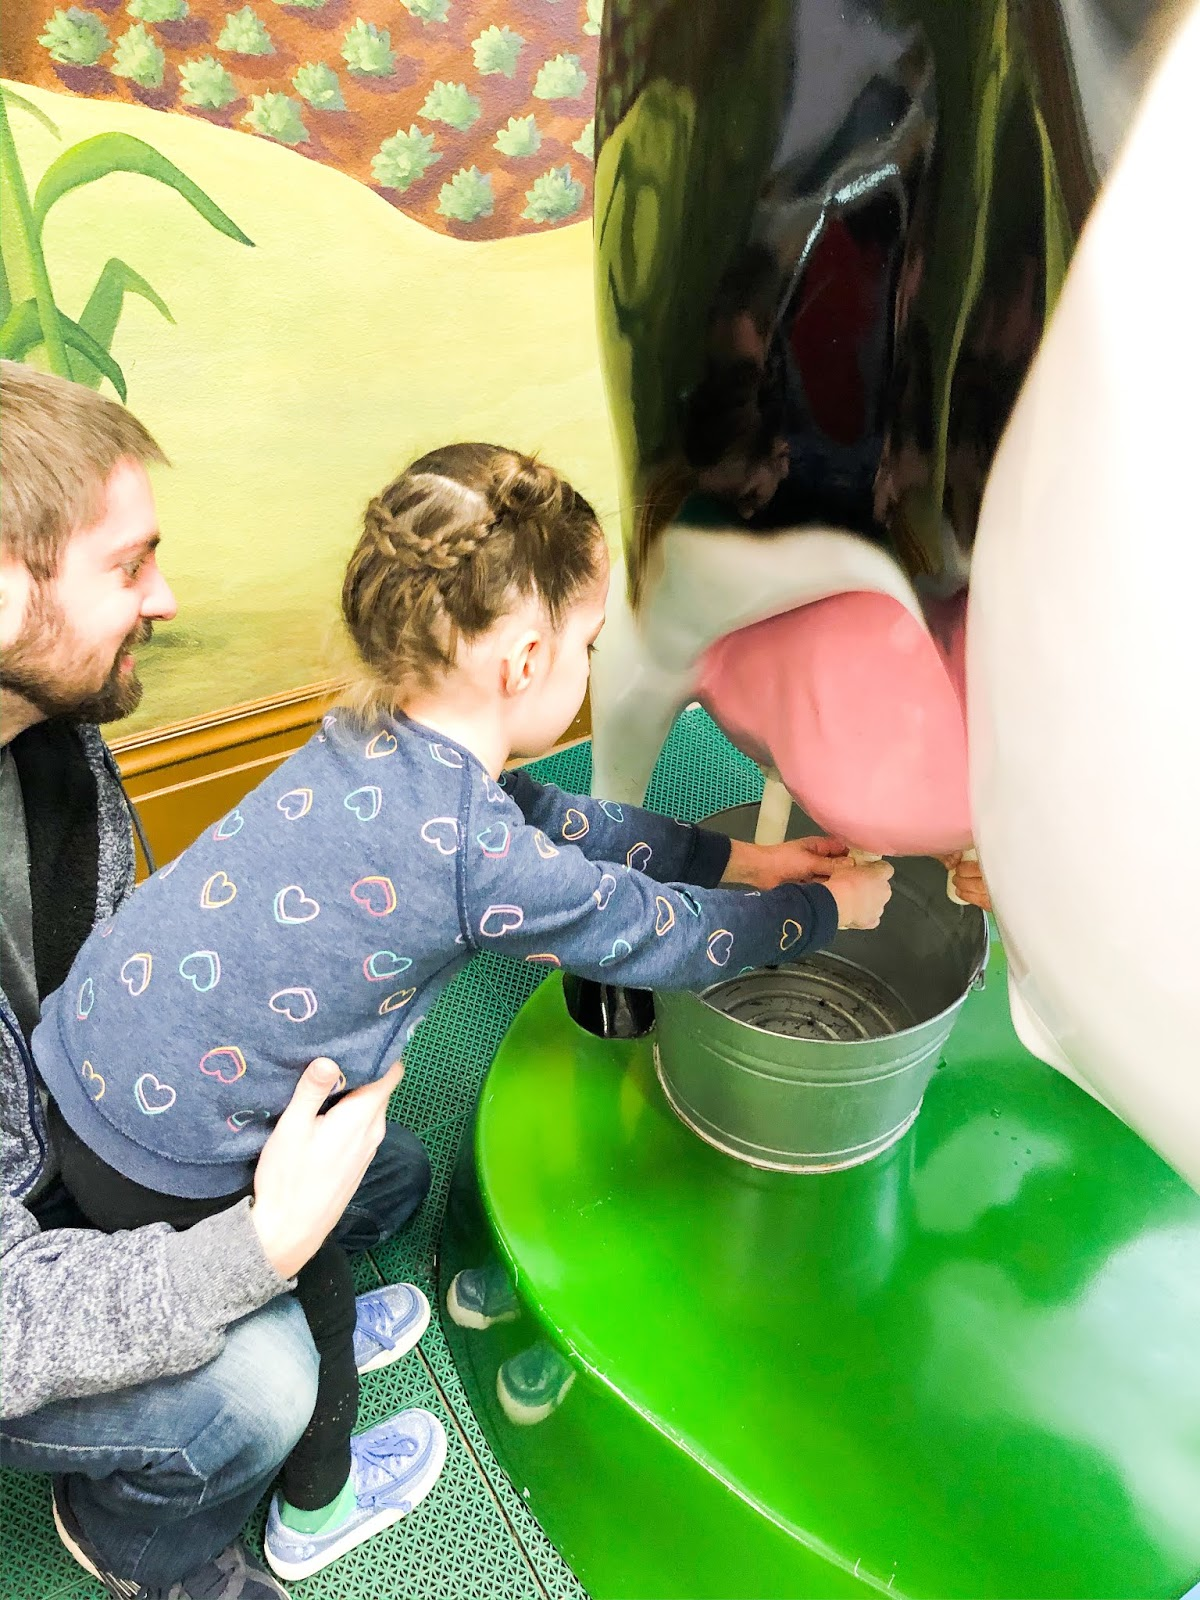 Things to do in st George Utah at night. St George Childrens museum rental. Bowling St George. St George weather. Parks in St George. Tunder junction all abilities park. Salt project st George. Mini golf in st George. St George with kids.